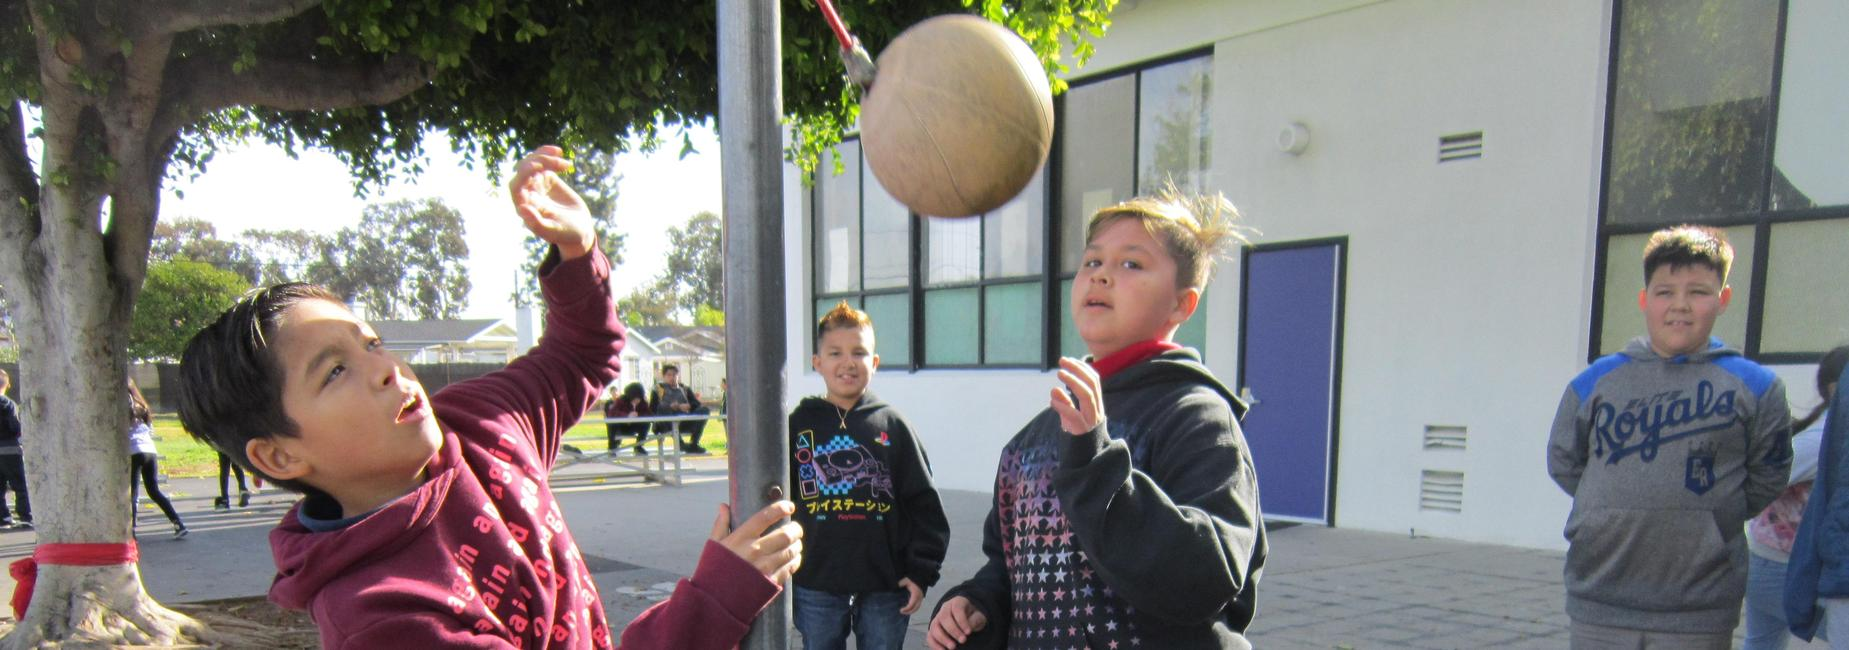 Students playing tetherball.